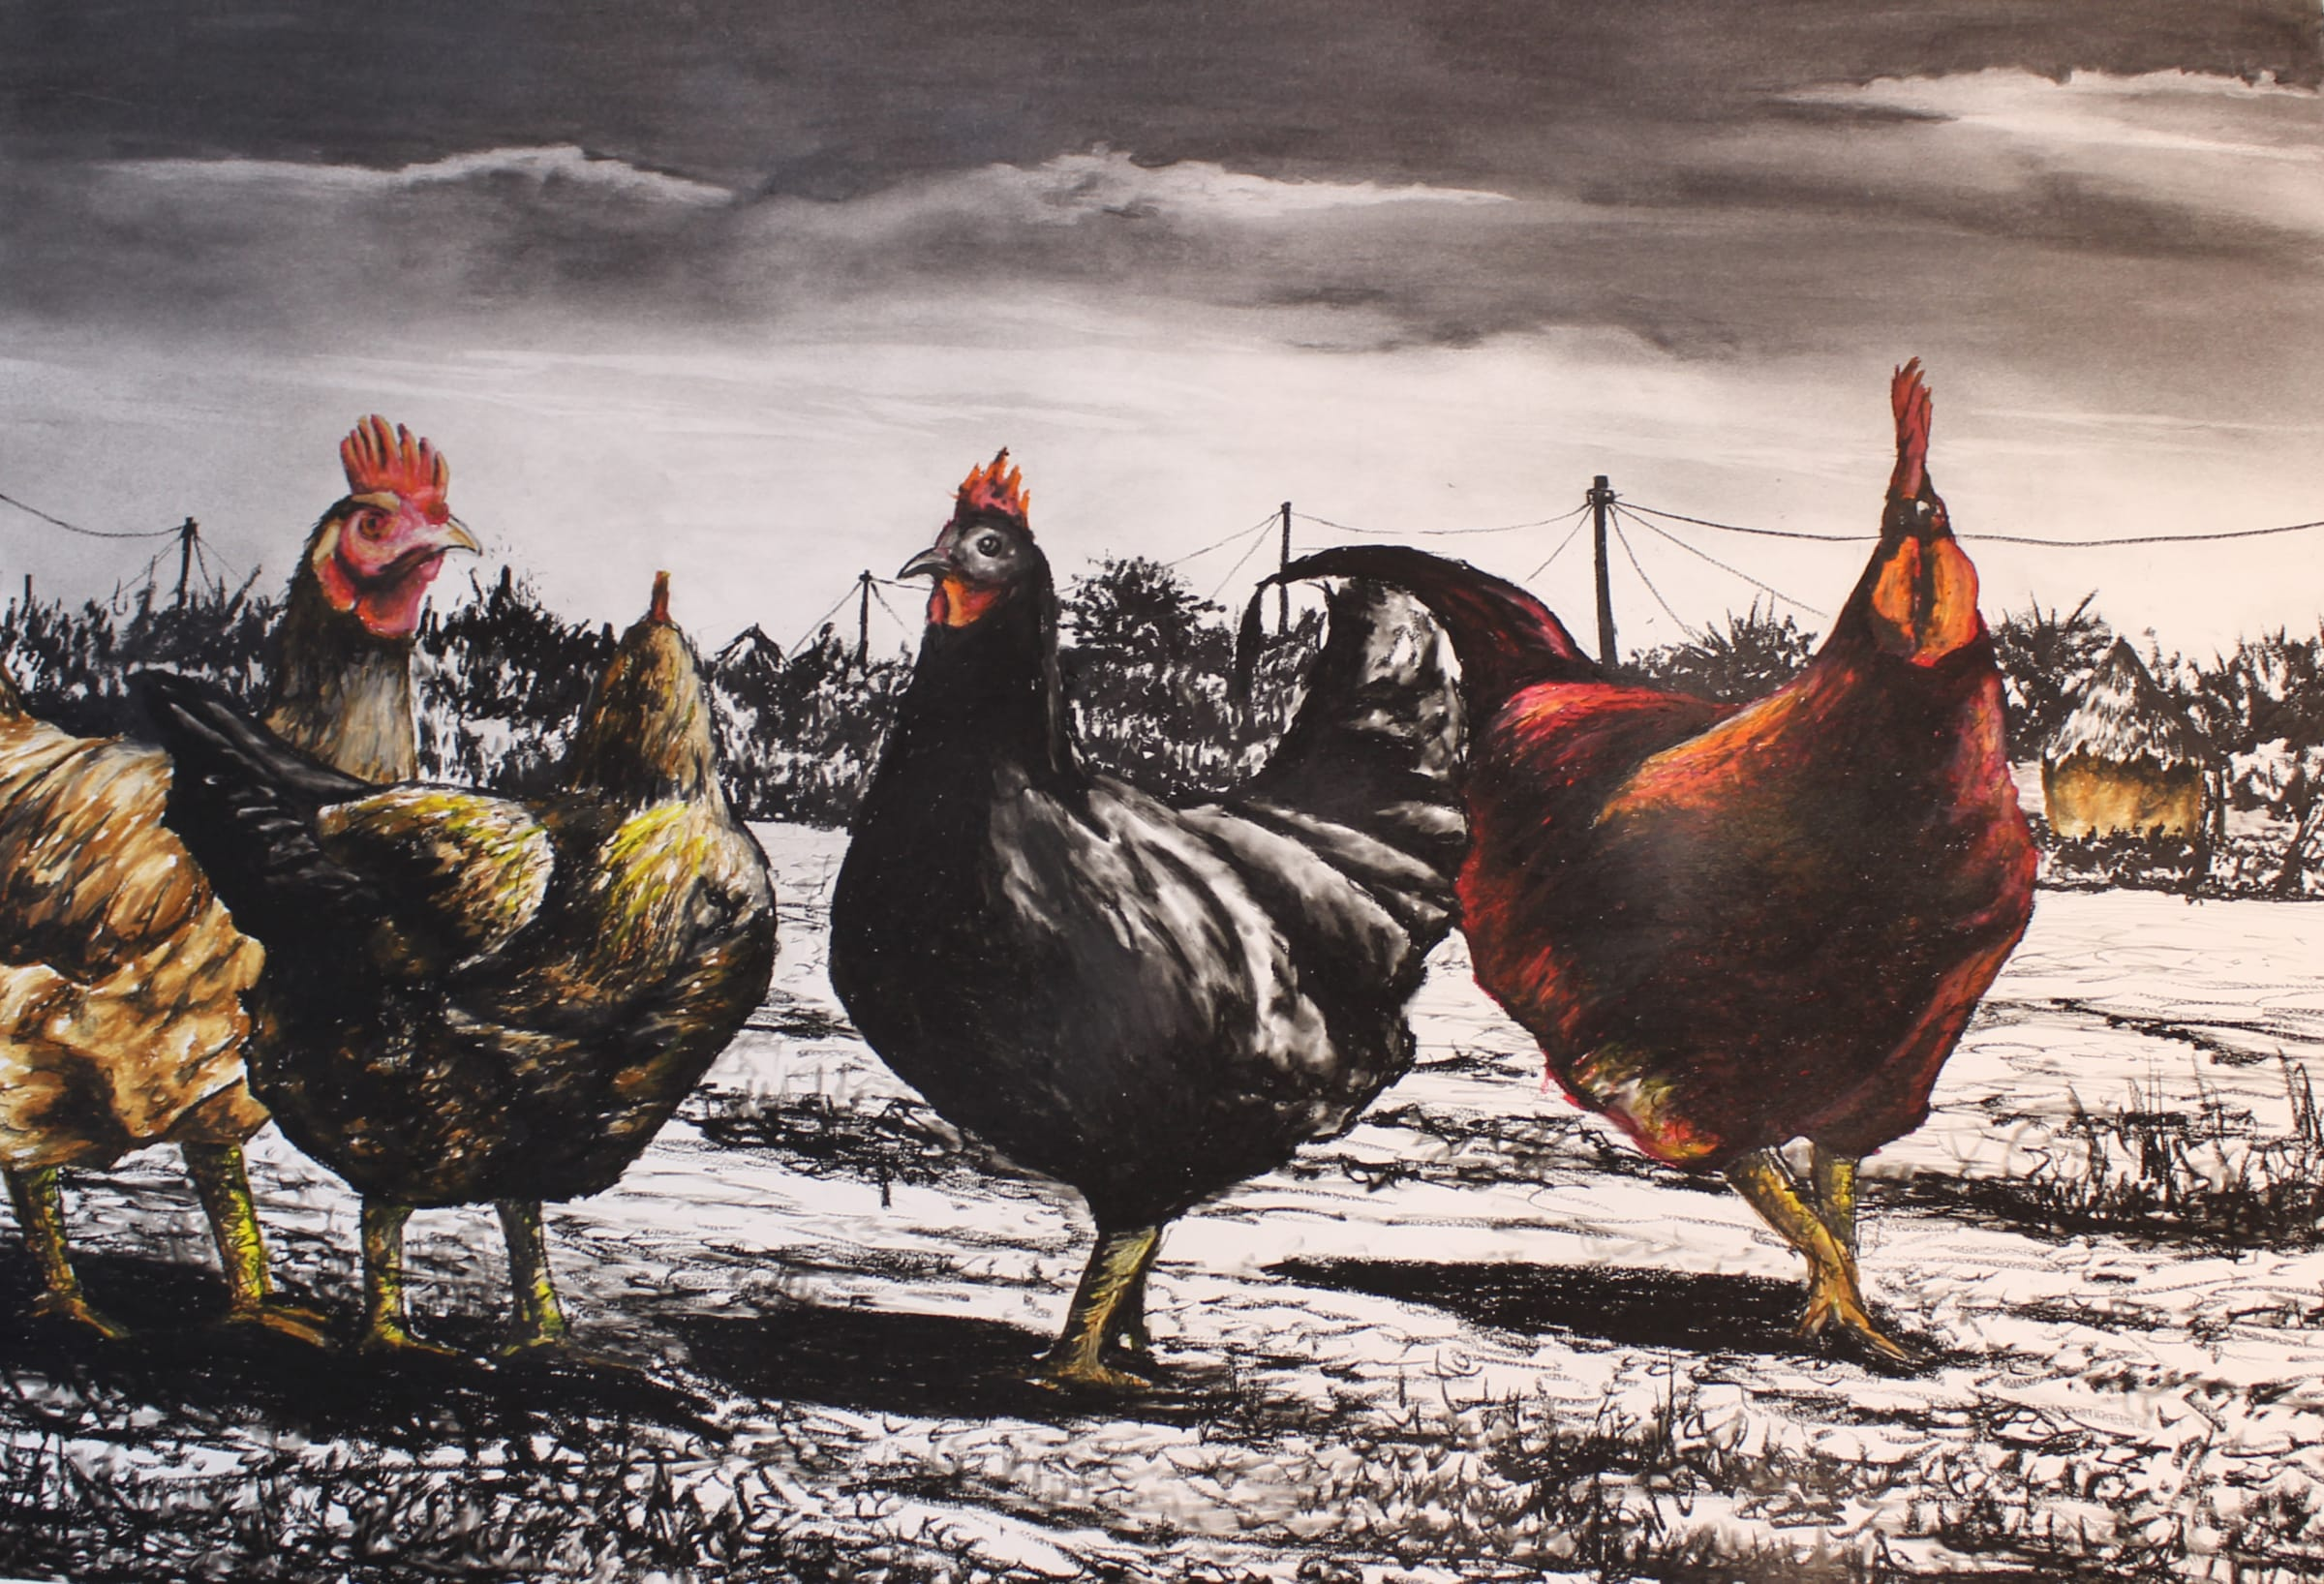 <span class=&#34;link fancybox-details-link&#34;><a href=&#34;/artists/98-walter-fumani-maluleke/works/1572-walter-fumani-maluleke-freely-strong-chicken-village-nkonkoroxi-wuxikaya-2018/&#34;>View Detail Page</a></span><div class=&#34;artist&#34;><strong>Walter Fumani Maluleke</strong></div> <div class=&#34;title&#34;><em>Freely Strong Chicken Village (Nkonkoroxi Wuxikaya)</em>, 2018</div> <div class=&#34;medium&#34;>Charcoal On Frabriano Paper</div> <div class=&#34;dimensions&#34;>118.5cm x 84.5cm (135cm x 101cm framed)</div><div class=&#34;price&#34;>R12,000.00</div>